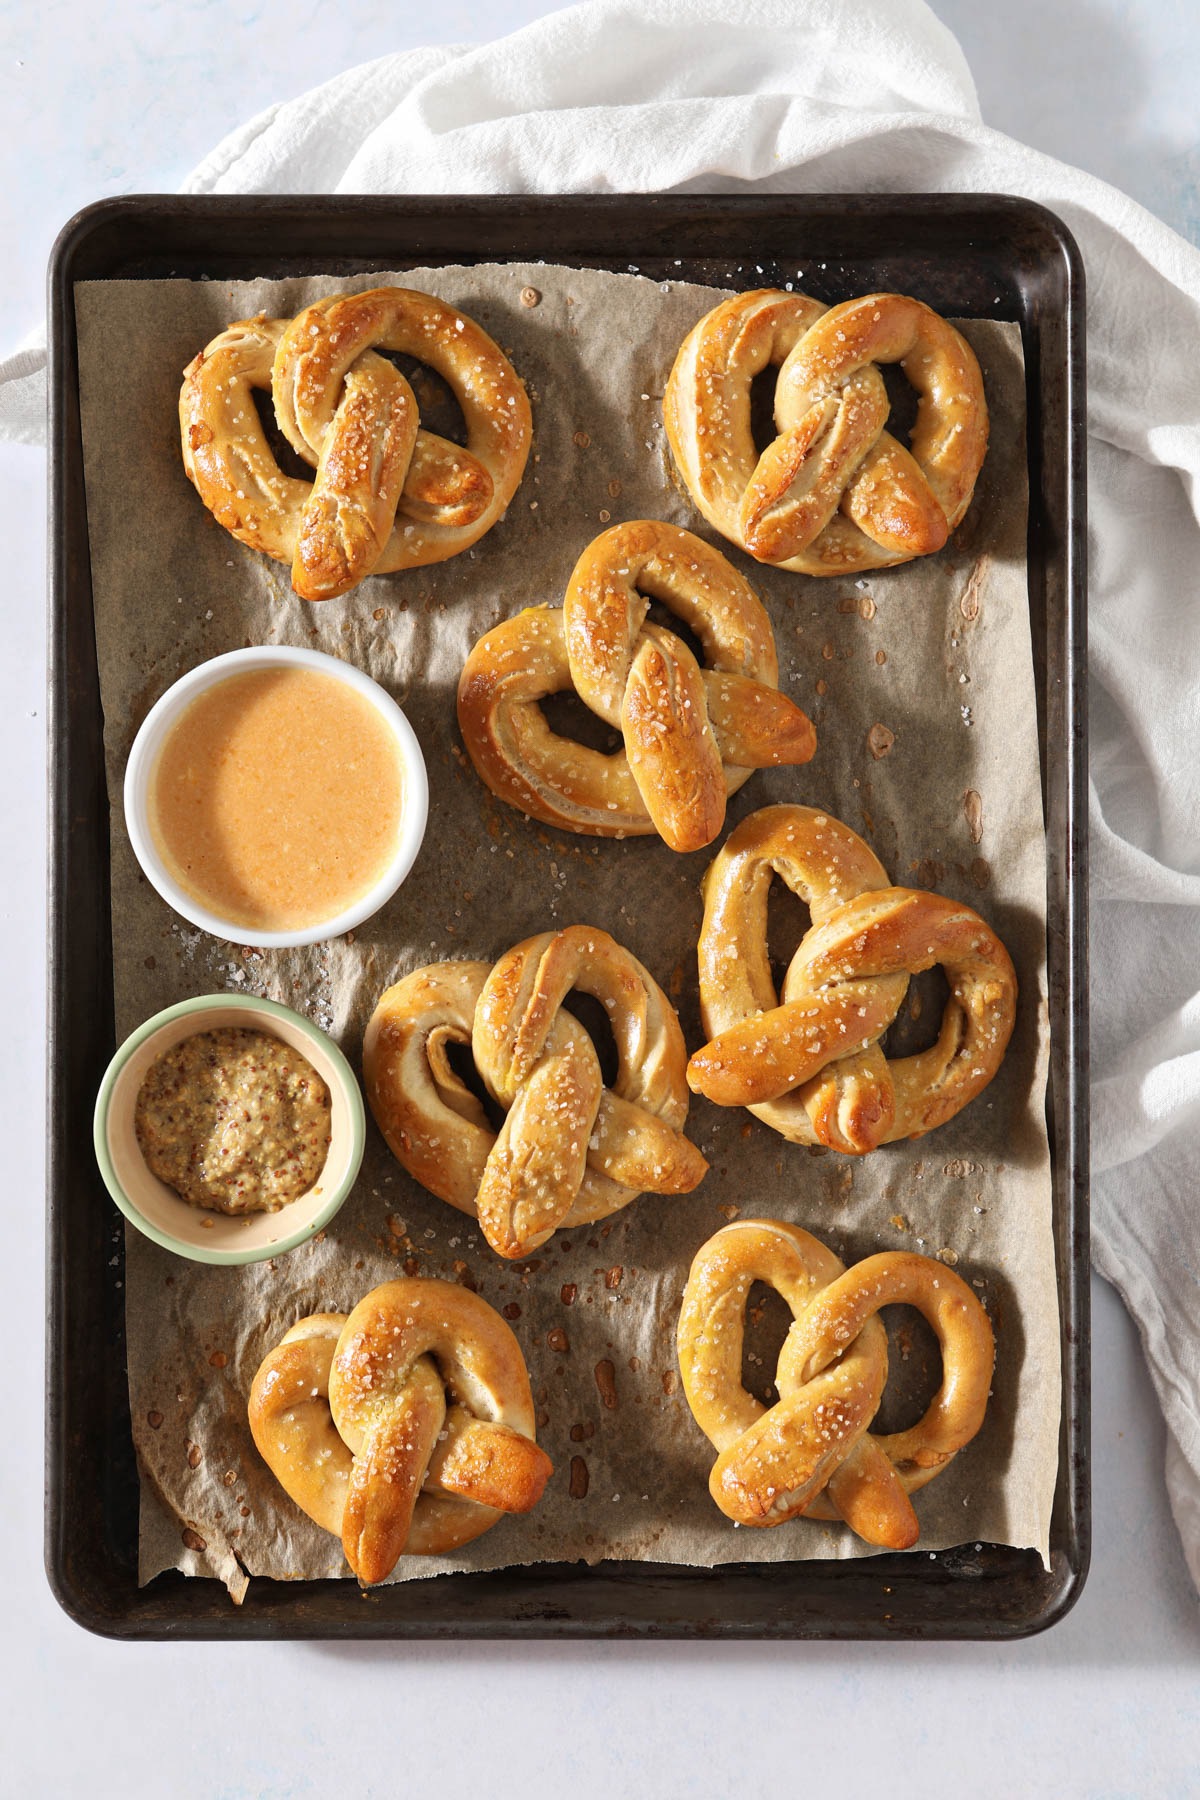 sourdough pretzels on tray with mustard beside